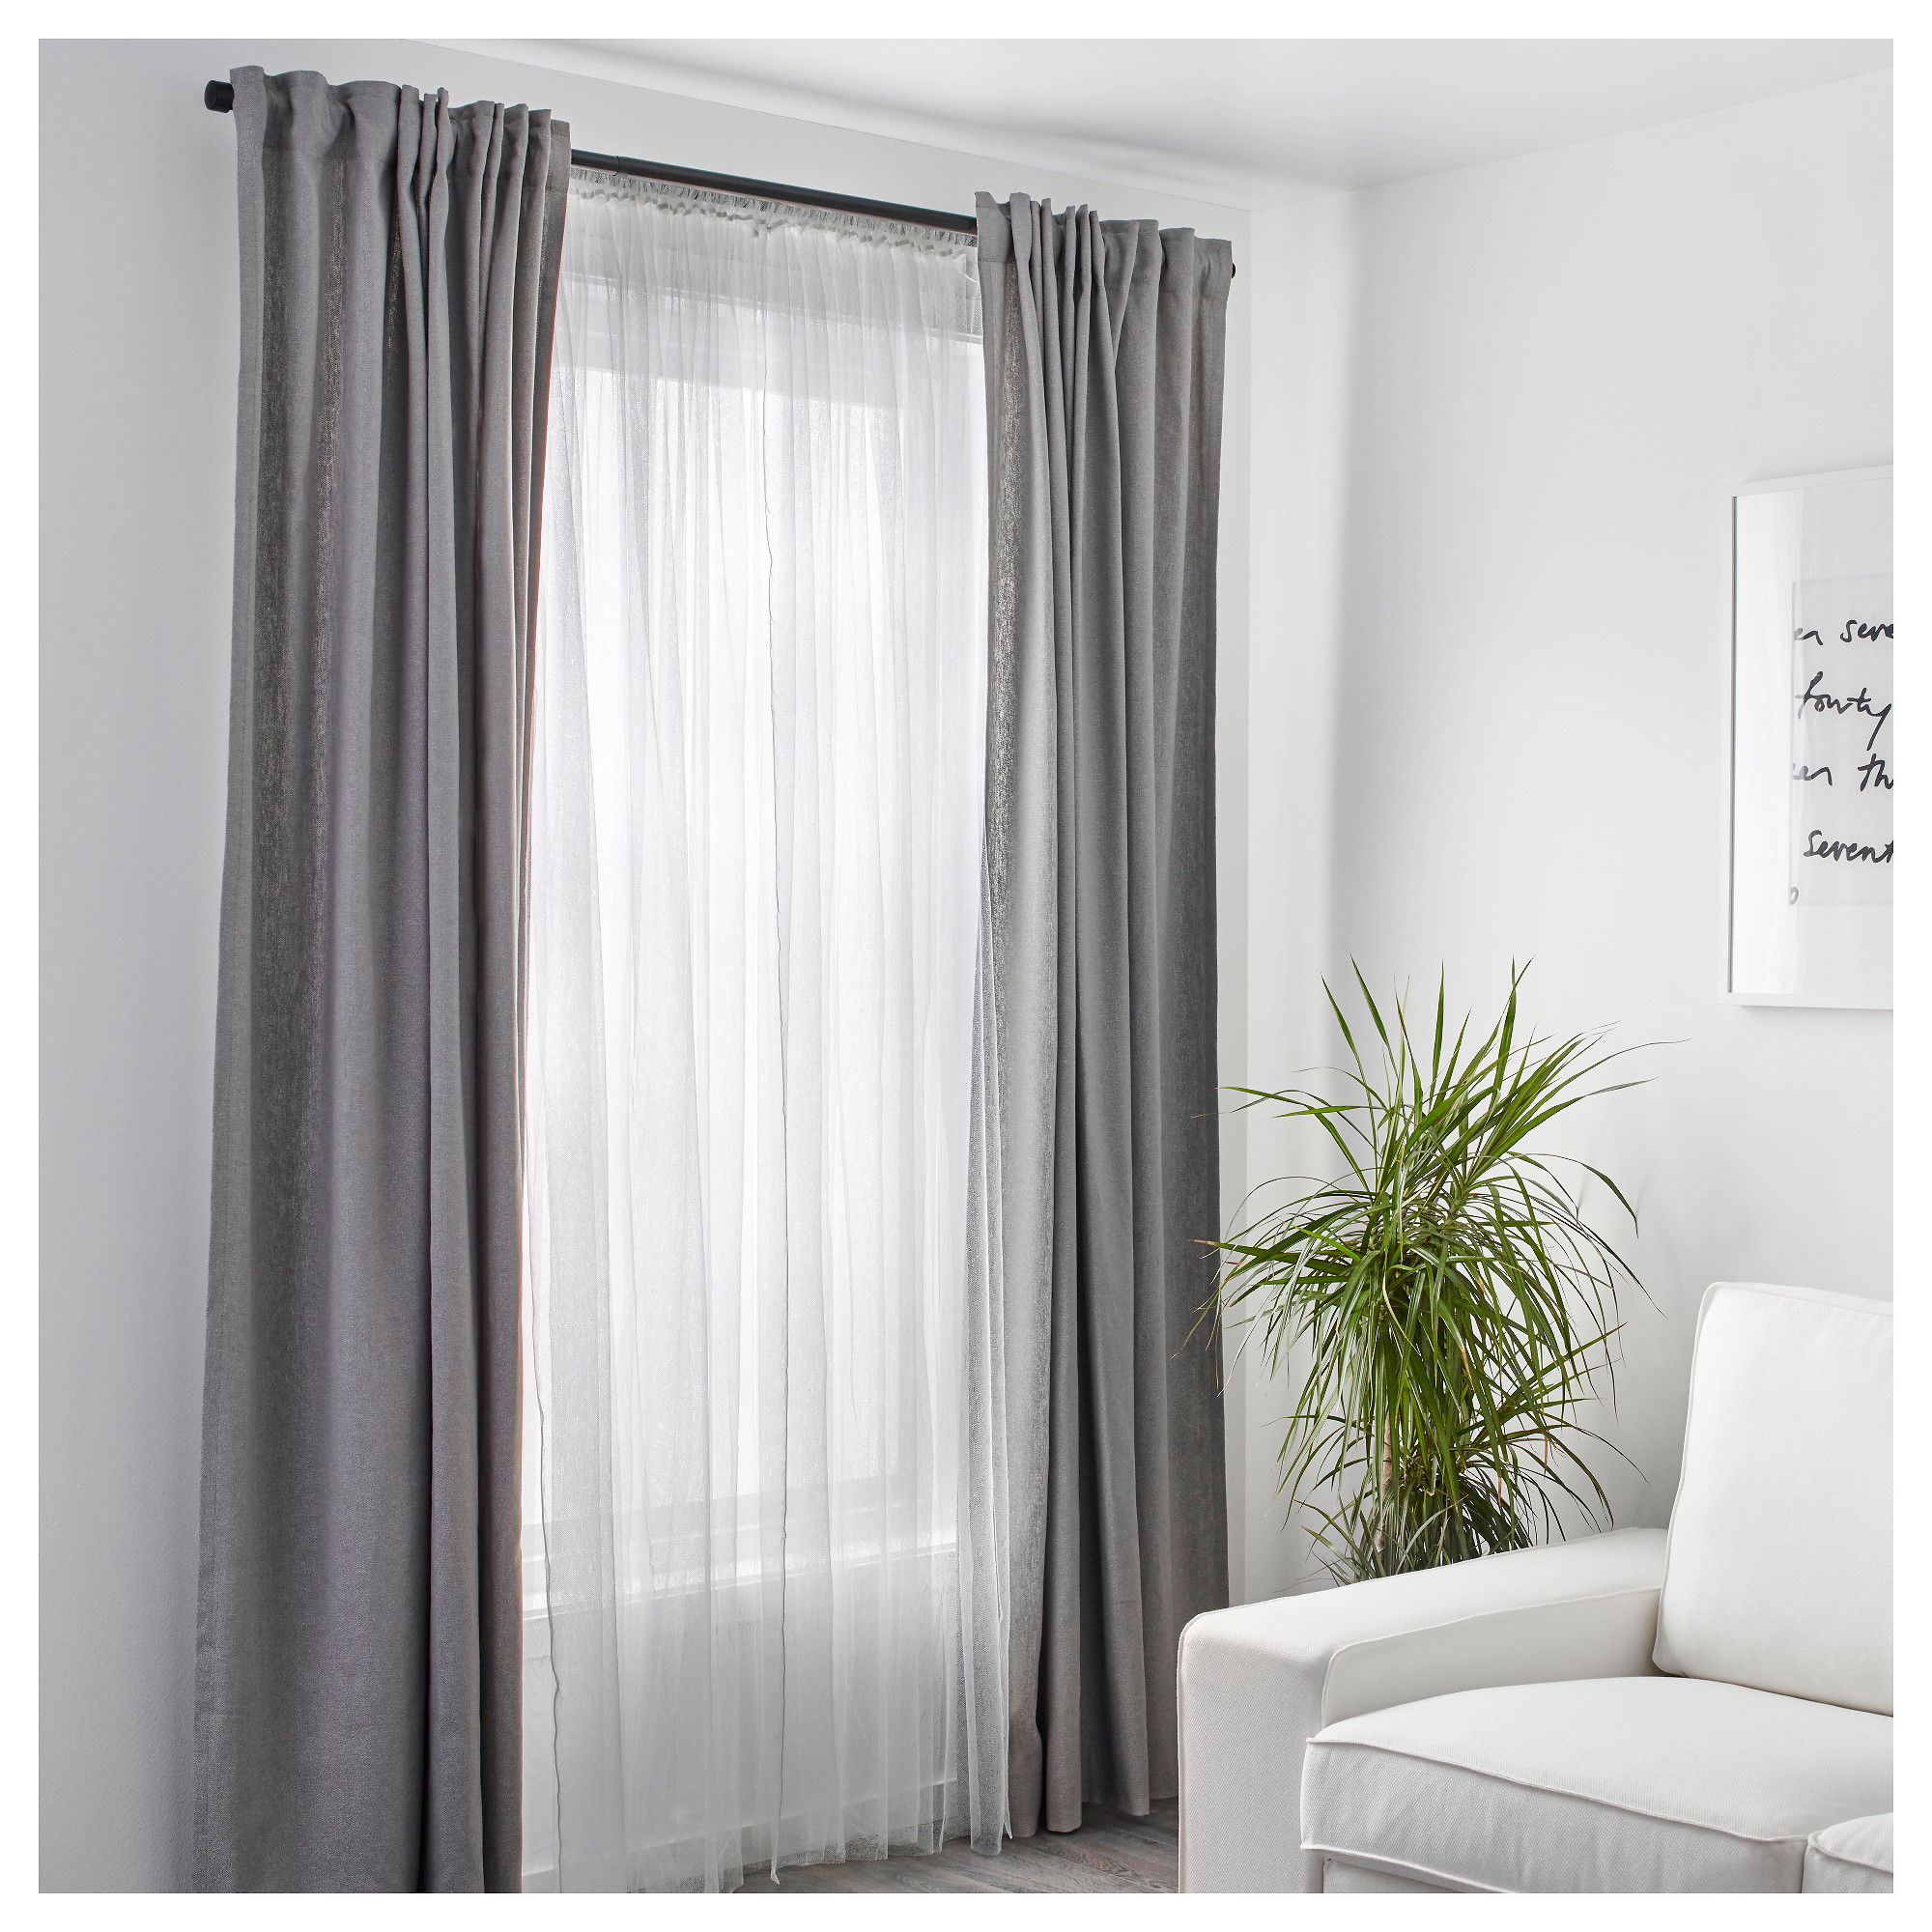 Canopy bed curtains ikea - Canopy Bed Curtains Ikea 18